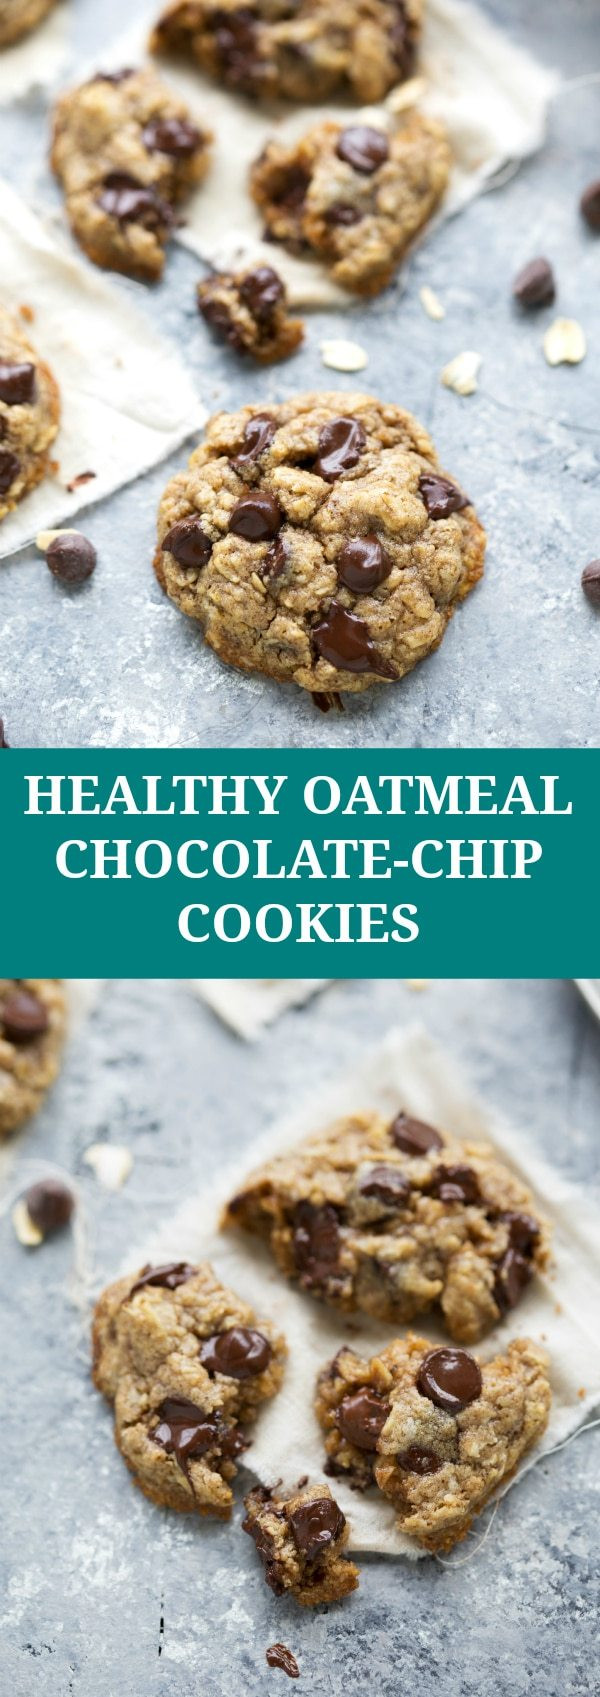 Healthier Chocolate Chip Cookies  The BEST healthy oatmeal chocolate chip cookies Chelsea